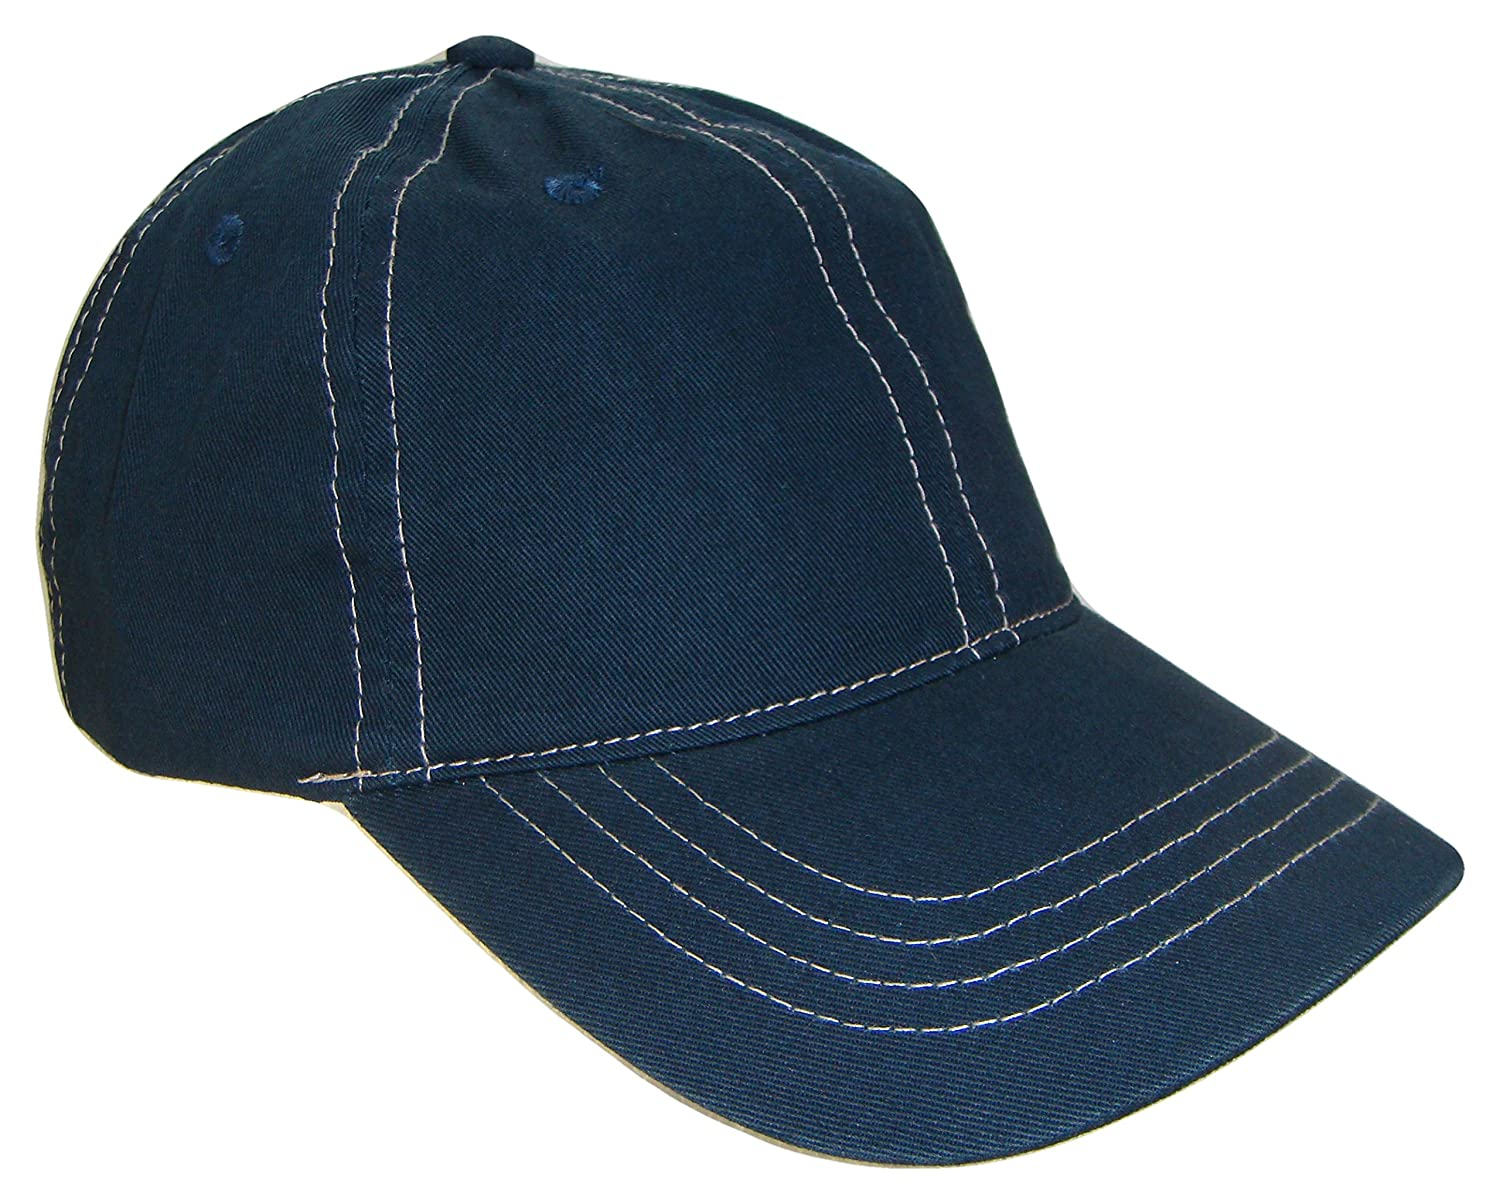 THS Adjustable Low Profile Polo Style Baseball Cap (One Size, Navy Blue/Tan)